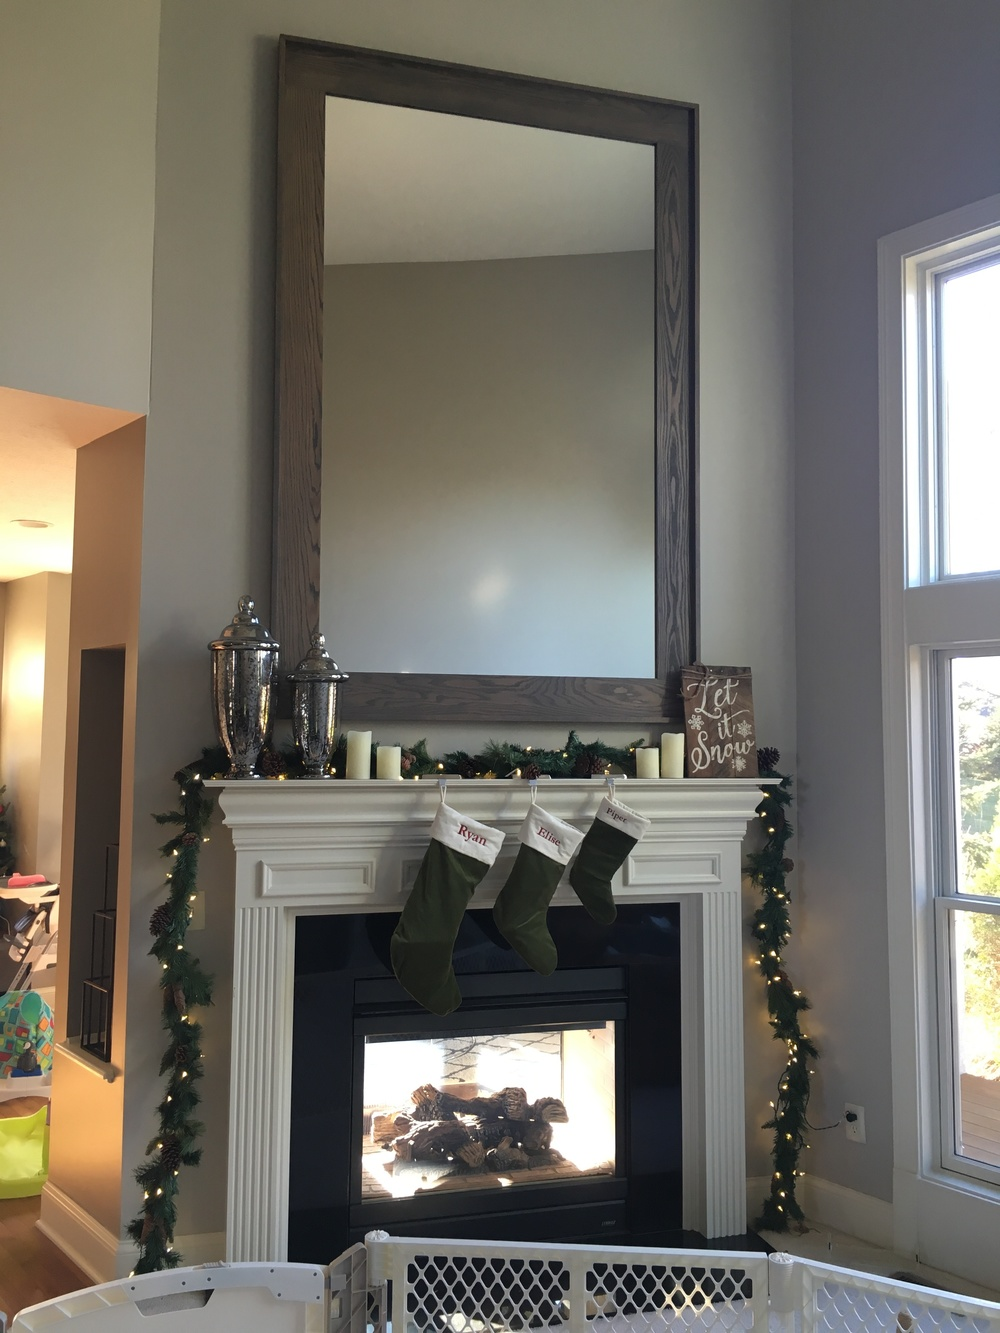 7'x5' Weathered Oak framed mirror